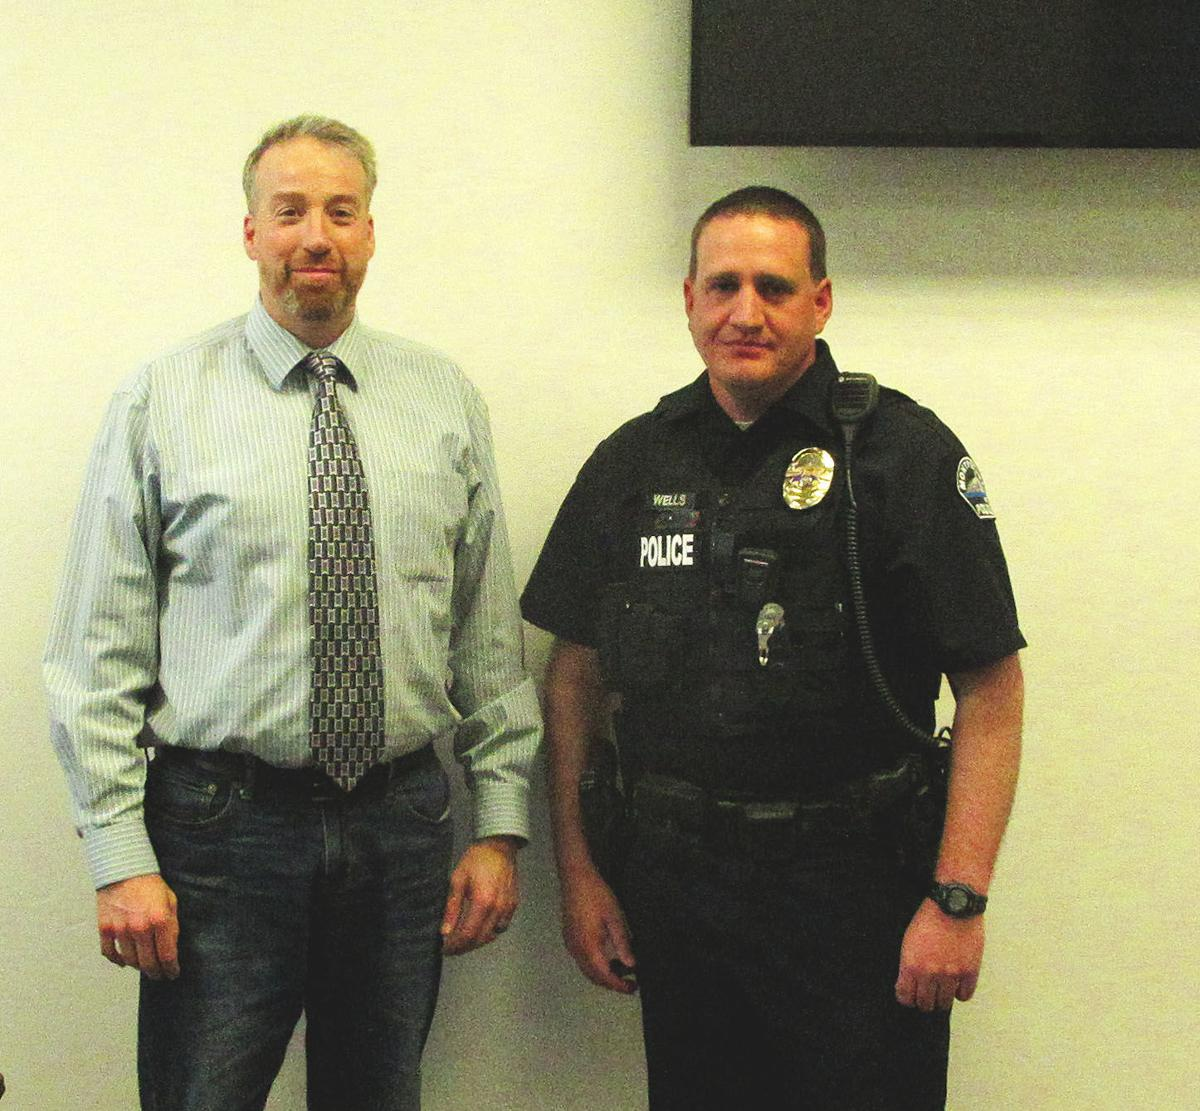 Montpelier City appoints Blake Wells as Chief of Police